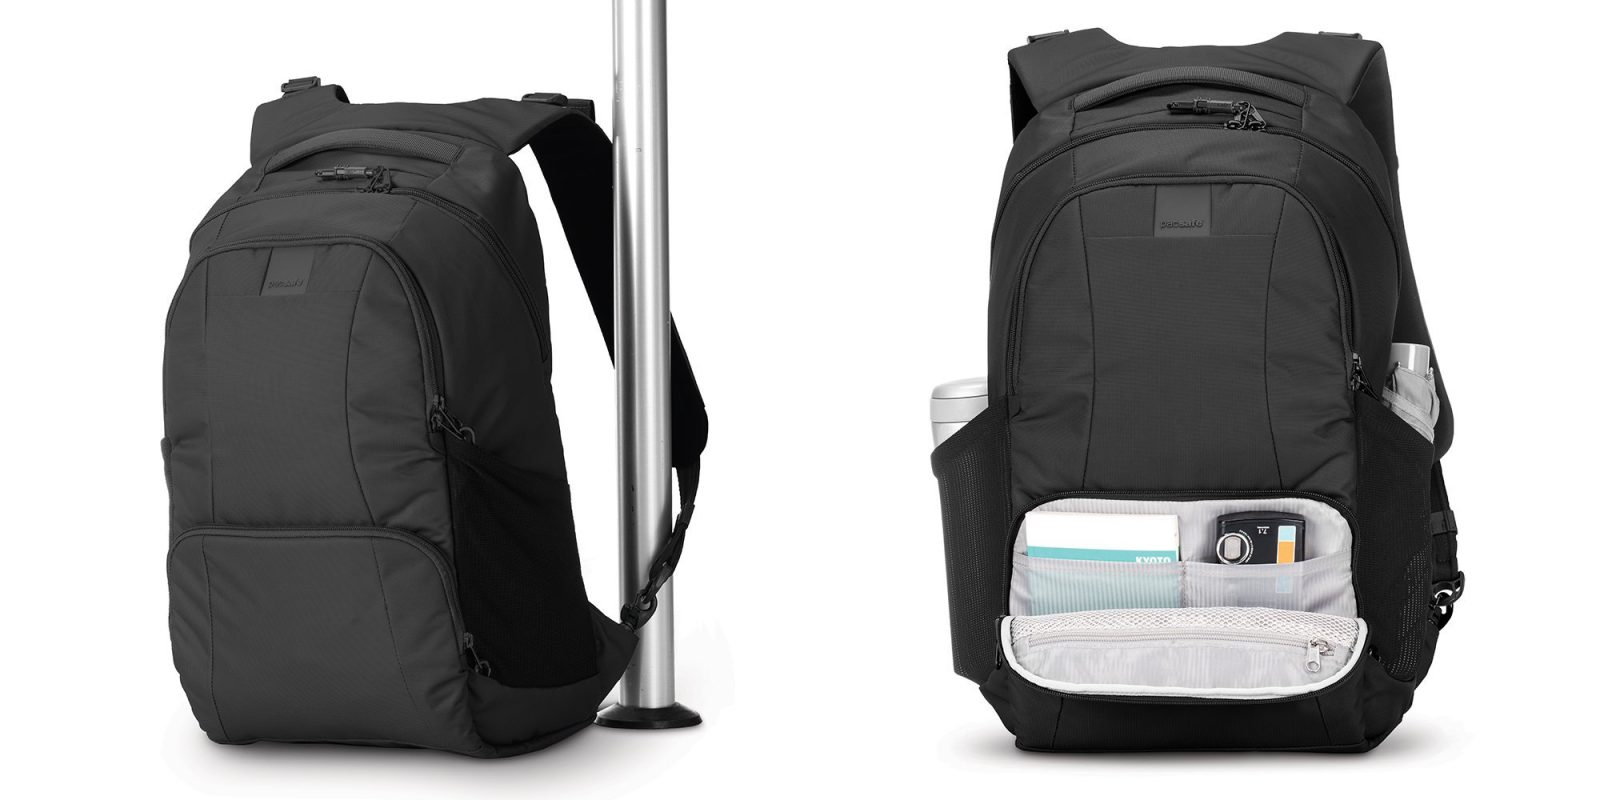 Pacsafe's MacBook + iPad Backpack is lockable and cut-proof: $93 (Reg. $120)